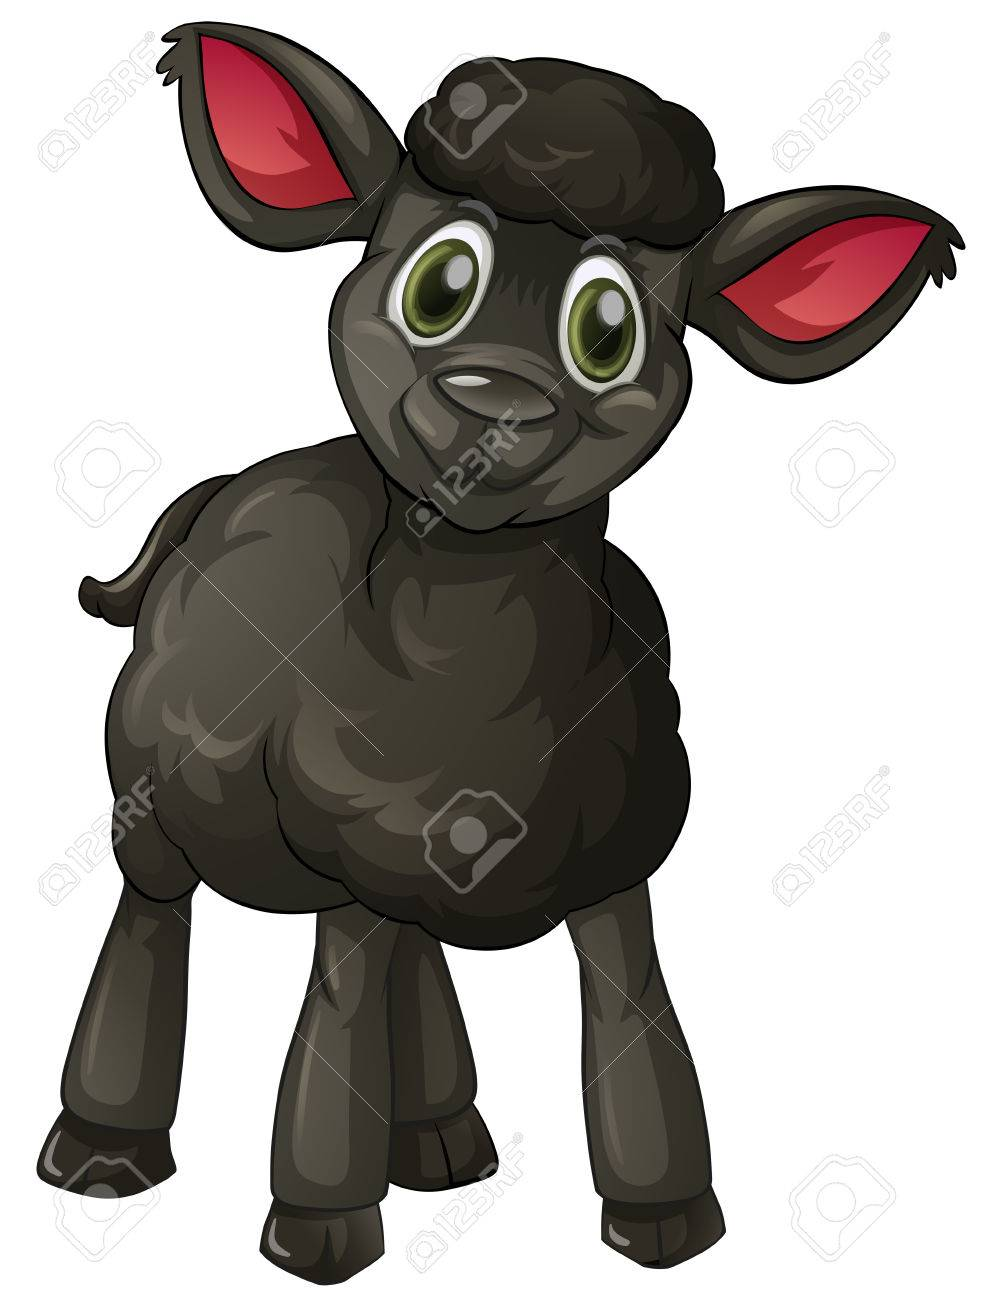 Black lamb with happy face illustration.